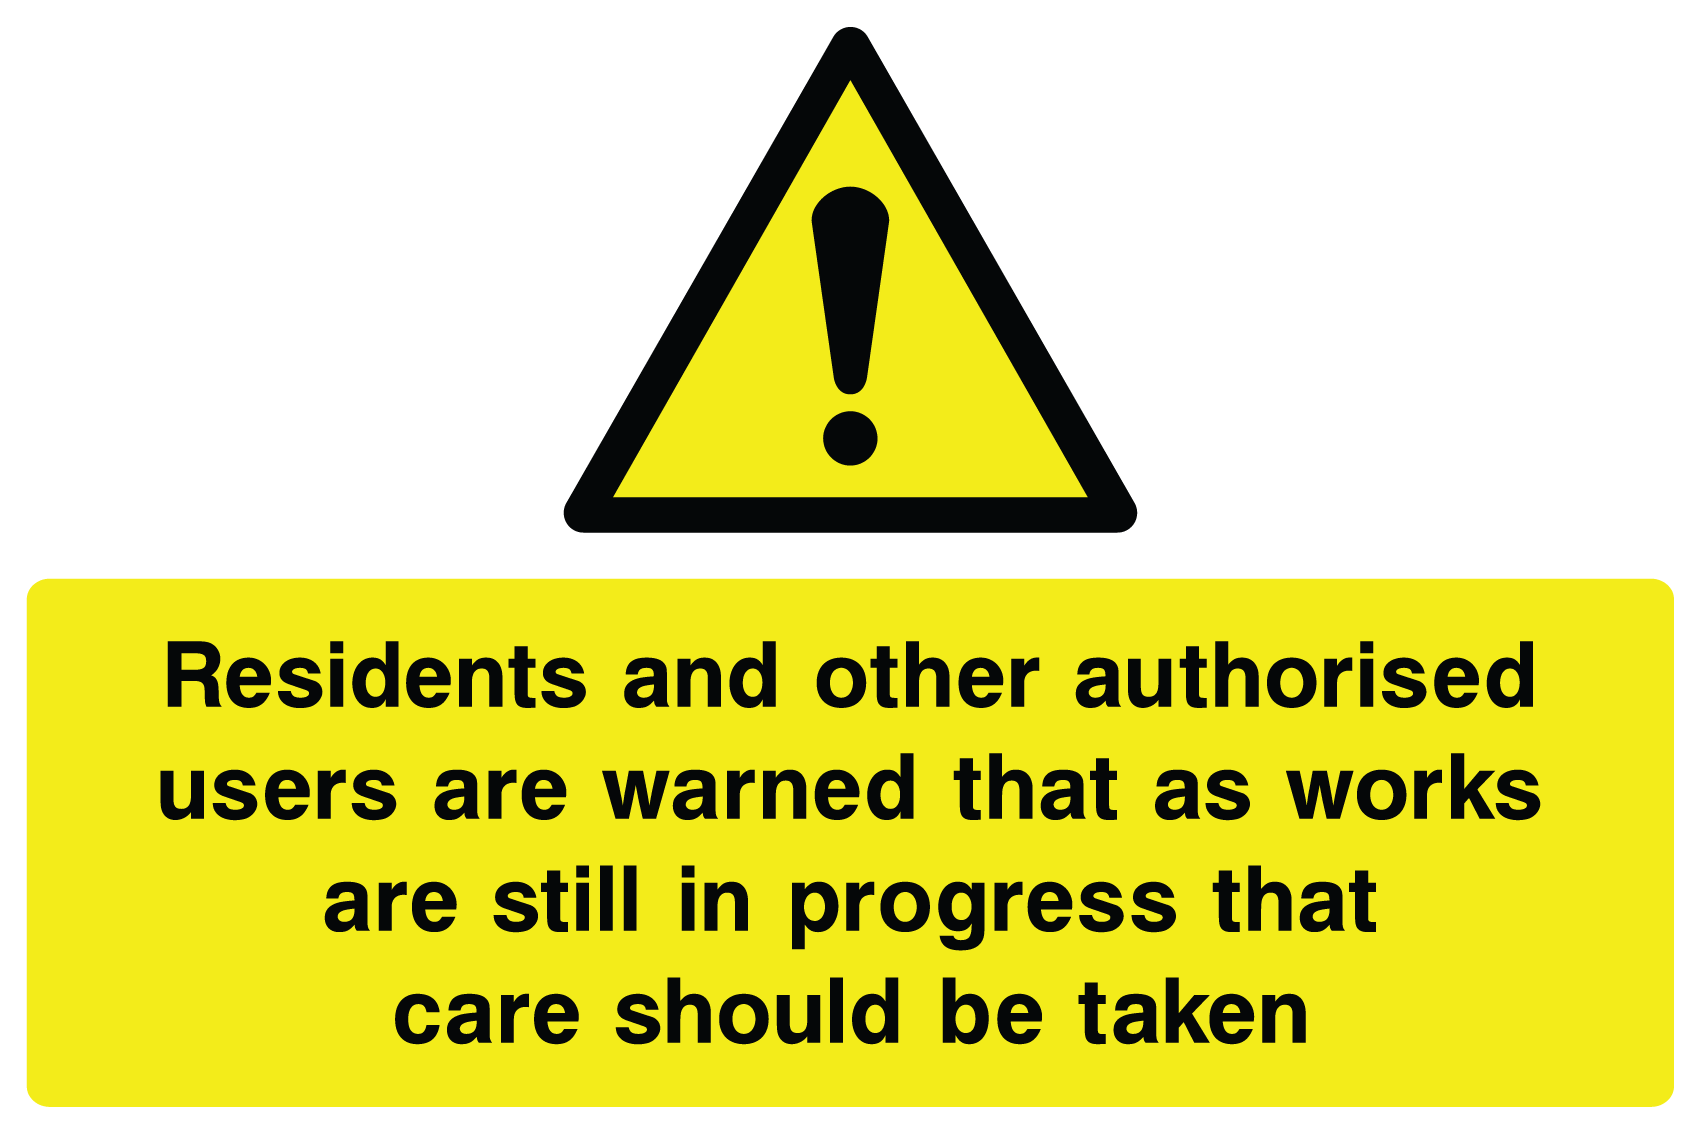 Residents and other authorised users work in progress sign